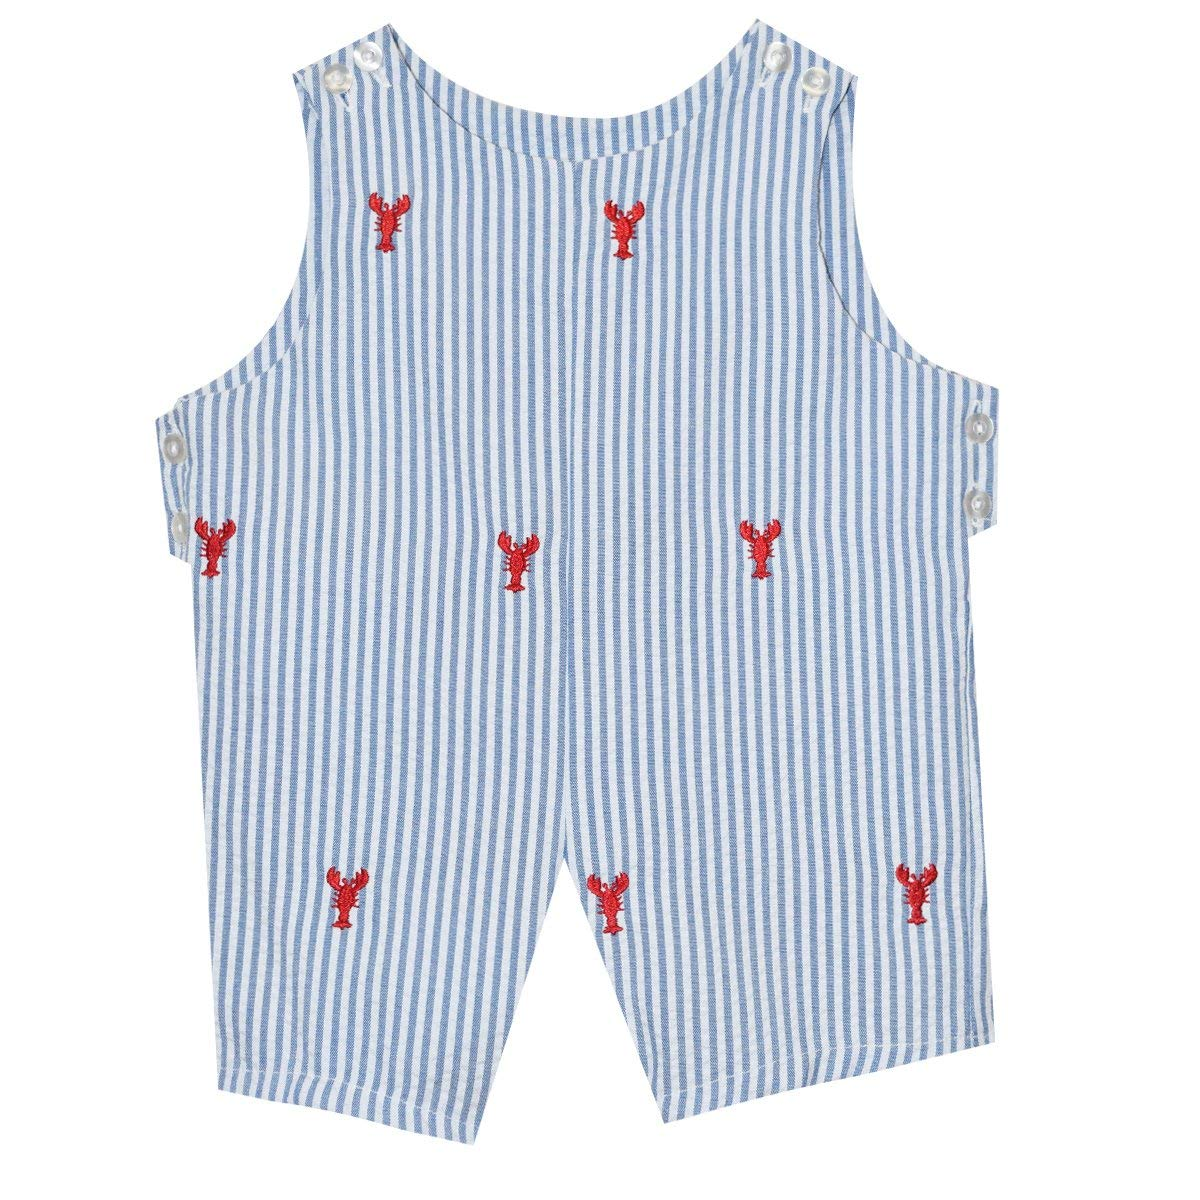 Lobsters Embroidered Blue Stripe Boys Shortall